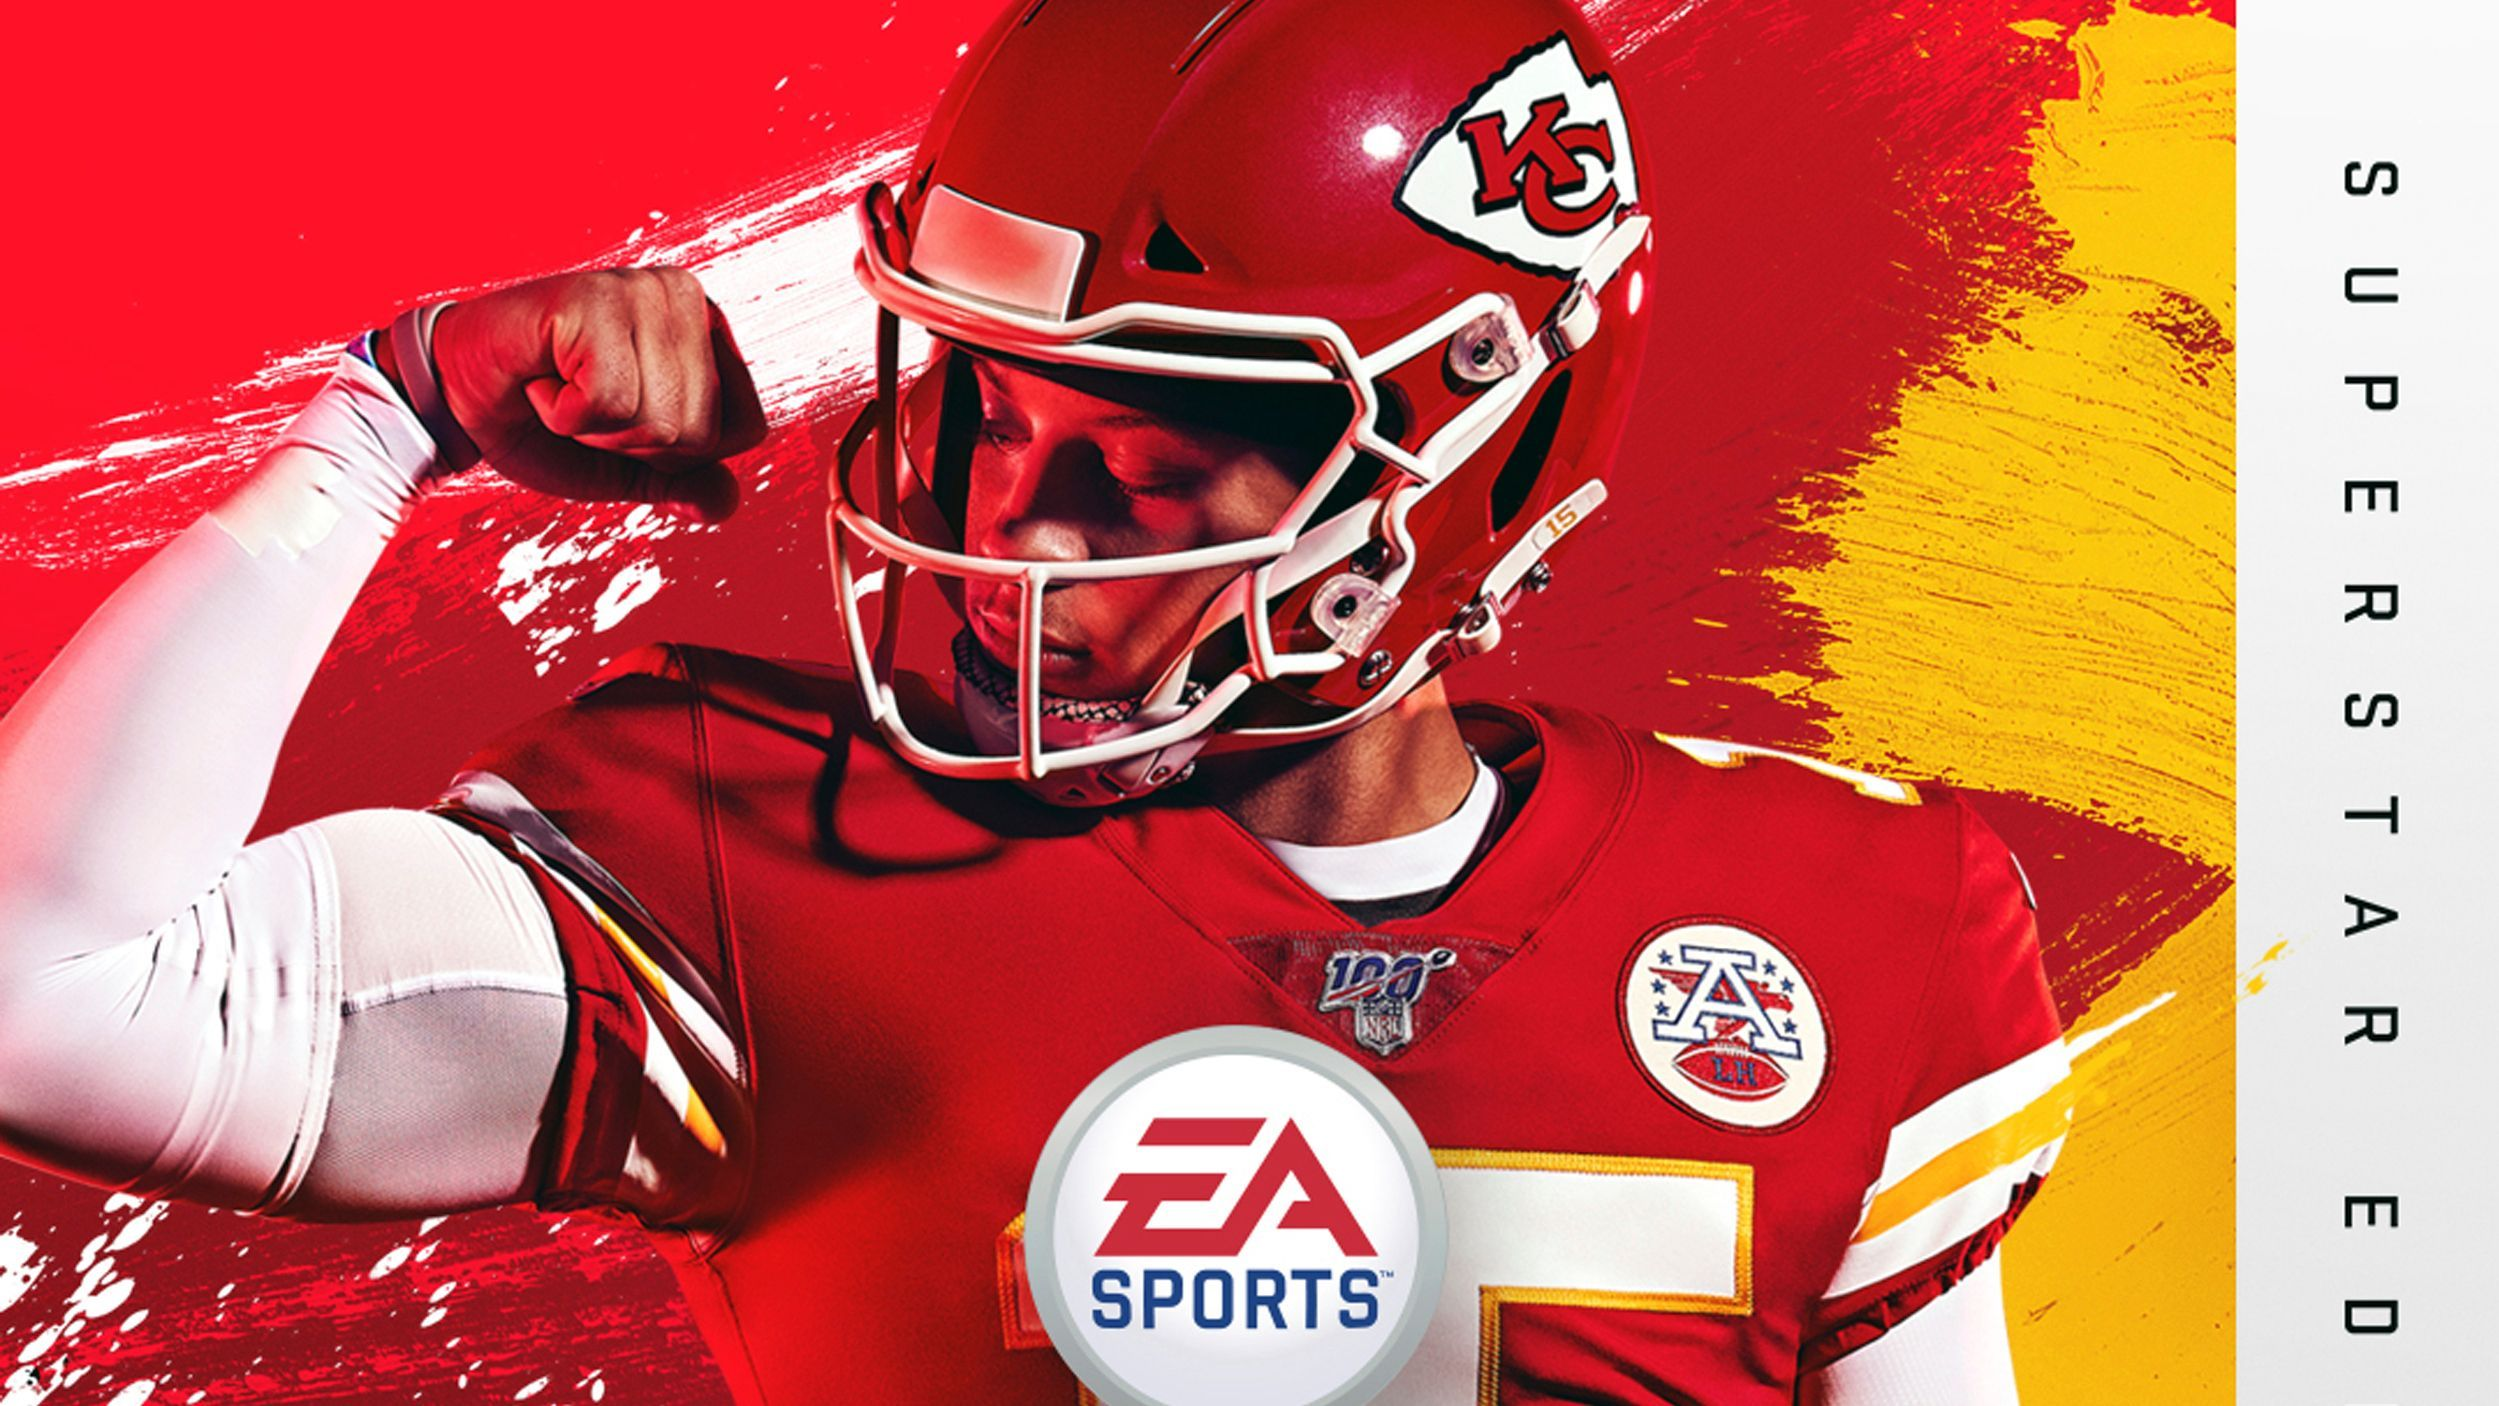 Kansas City Chiefs Qb Patrick Mahomes On Cover Of Madden Nfl 20 Kansas City Chiefs Qb Madden Nfl Nfl